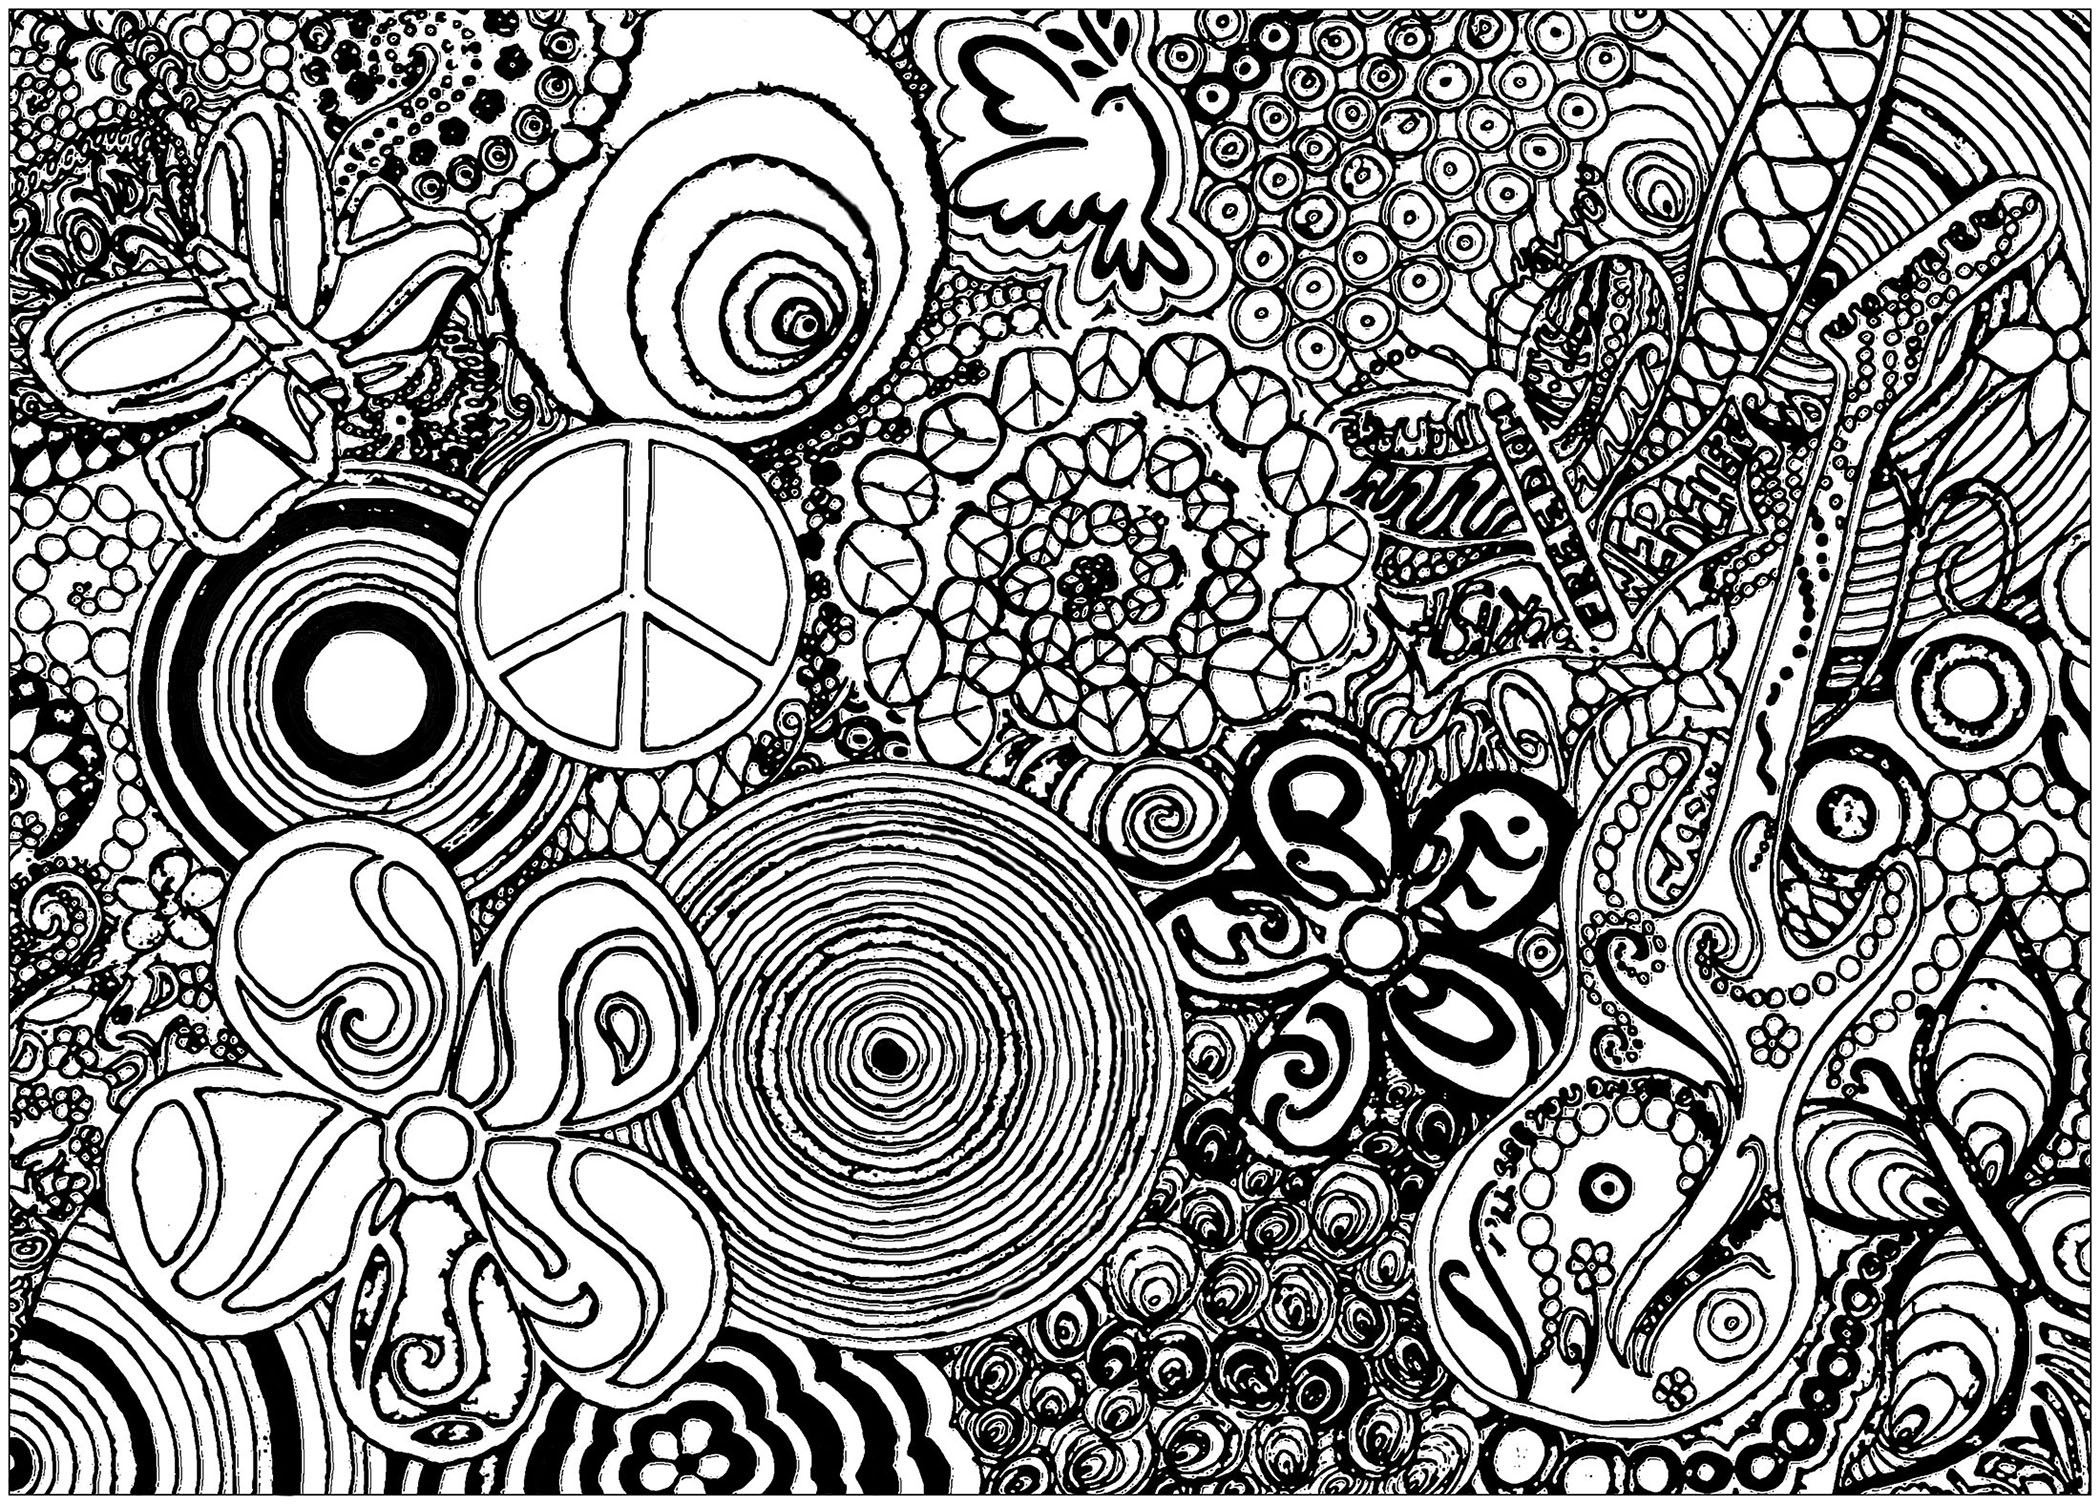 Psychedelic patterns music and peace - Psychedelic Adult Coloring Pages